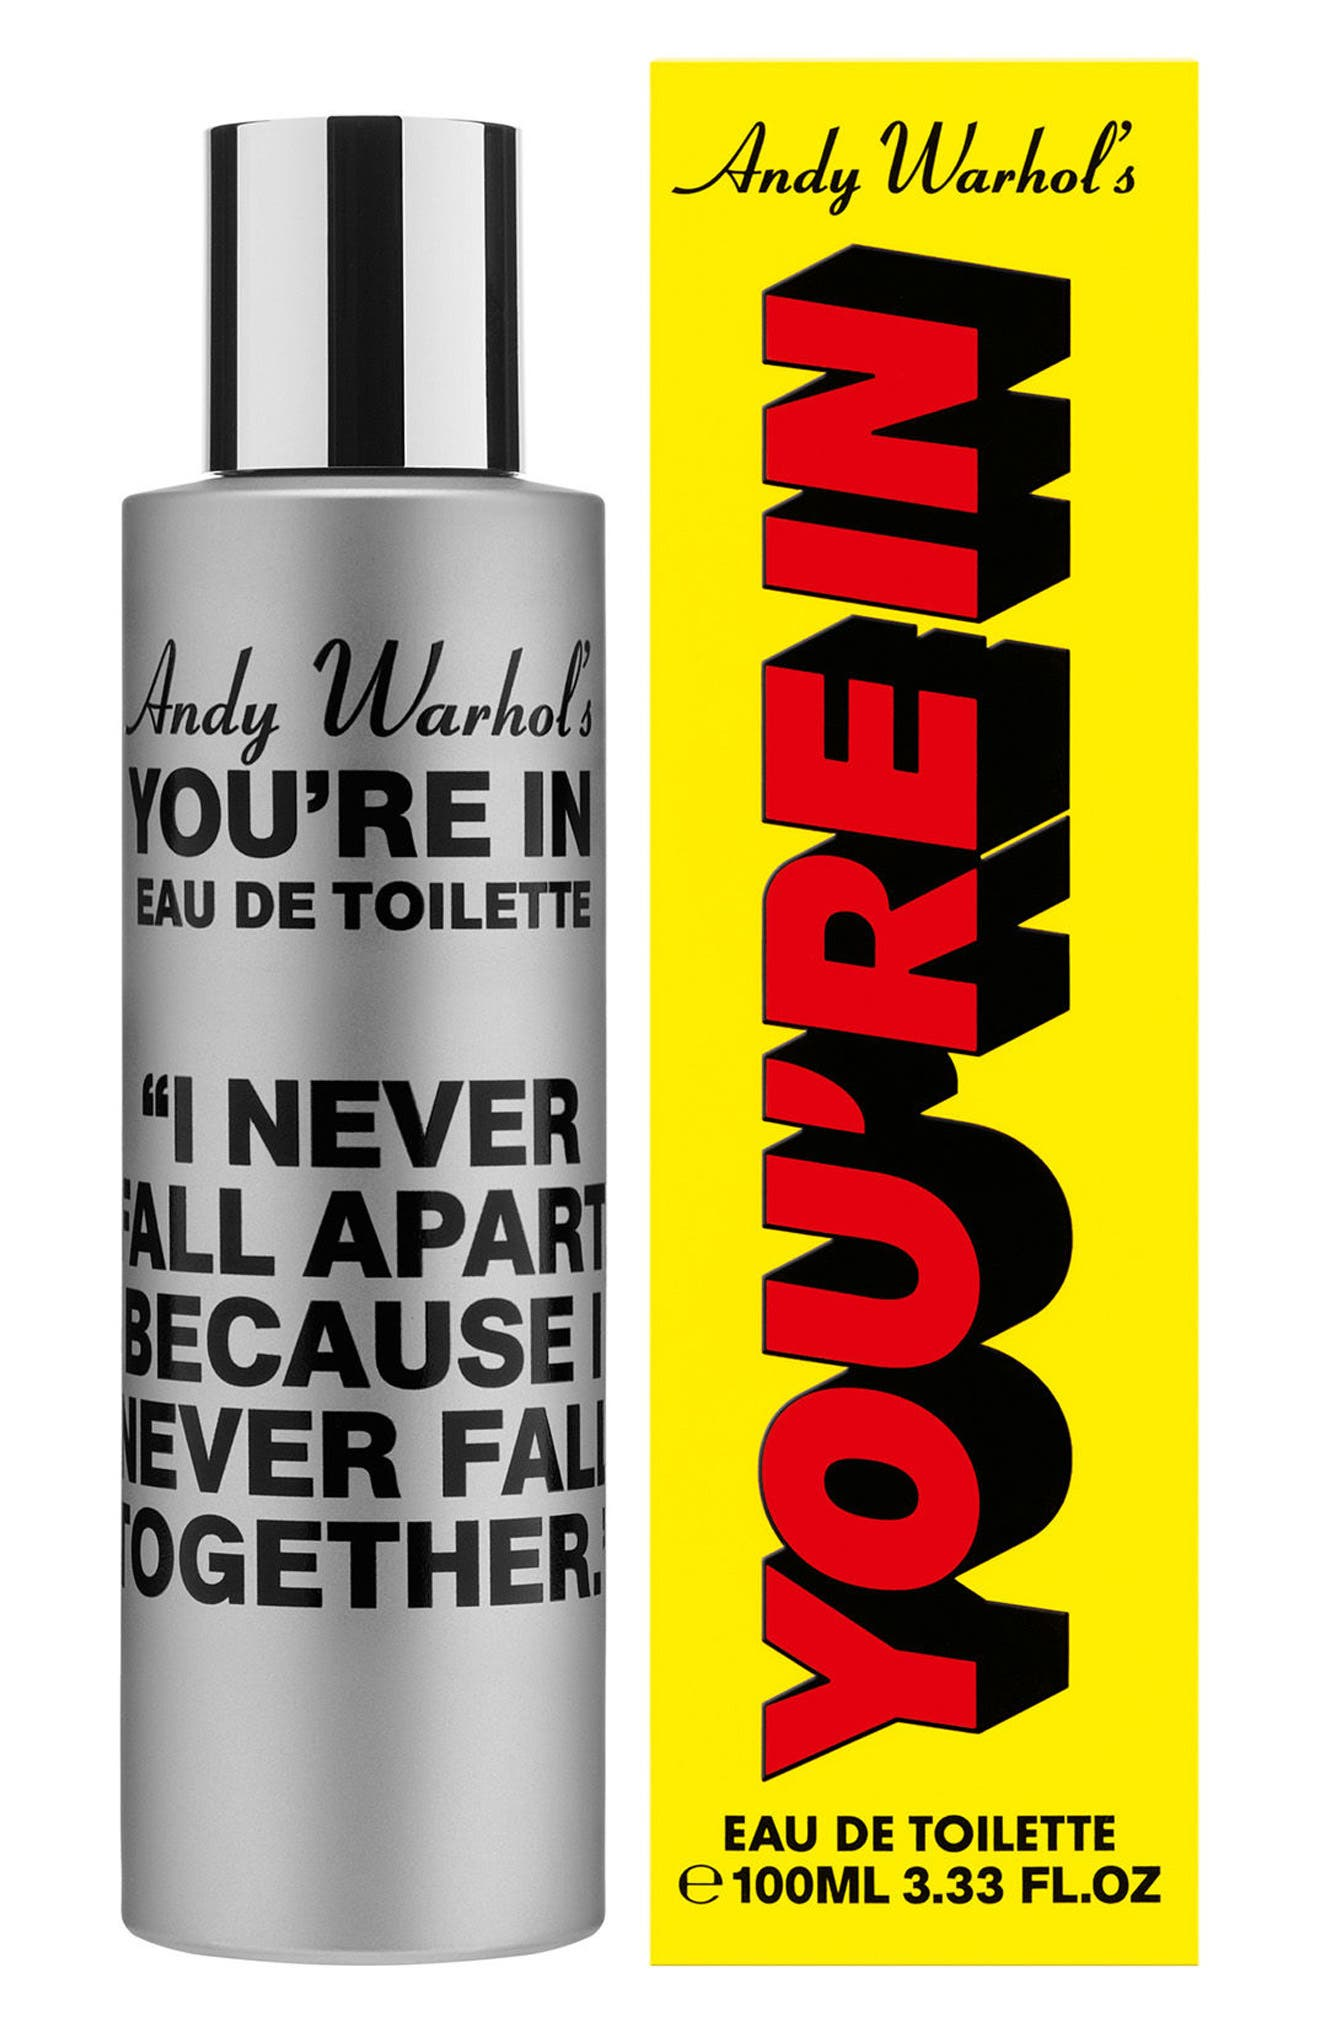 COMME DES GARÇONS, Andy Warhol You're In Unisex Eau de Toilette, Alternate thumbnail 2, color, I NEVER FALL